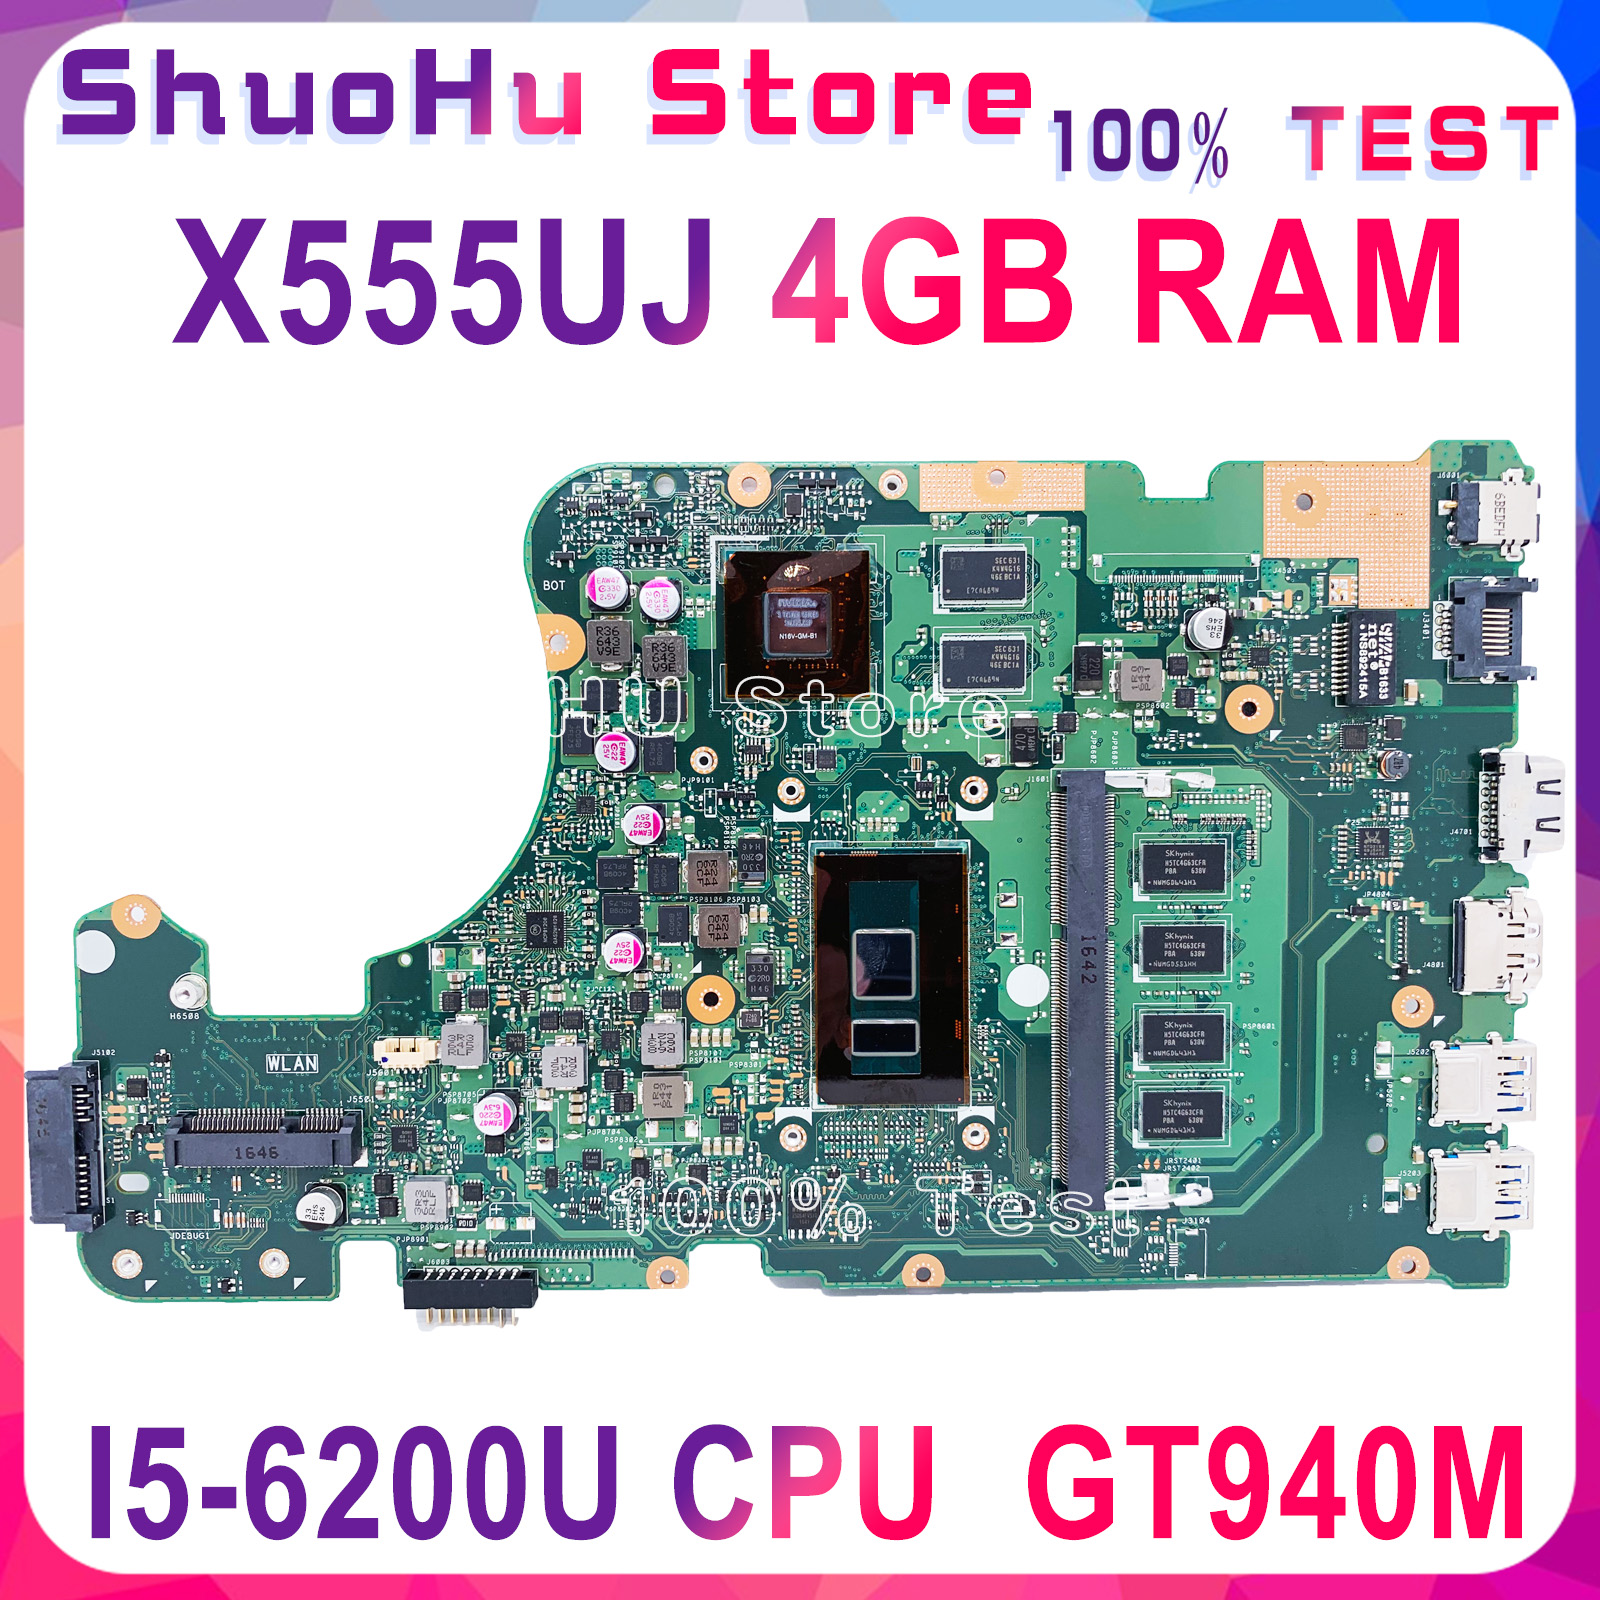 KEFU <font><b>X555UJ</b></font> For <font><b>ASUS</b></font> X555U <font><b>X555UJ</b></font> X555UB X555UF laptop motherboard I5-6200U 4G Memory GT940M tested 100% work original mainboard image